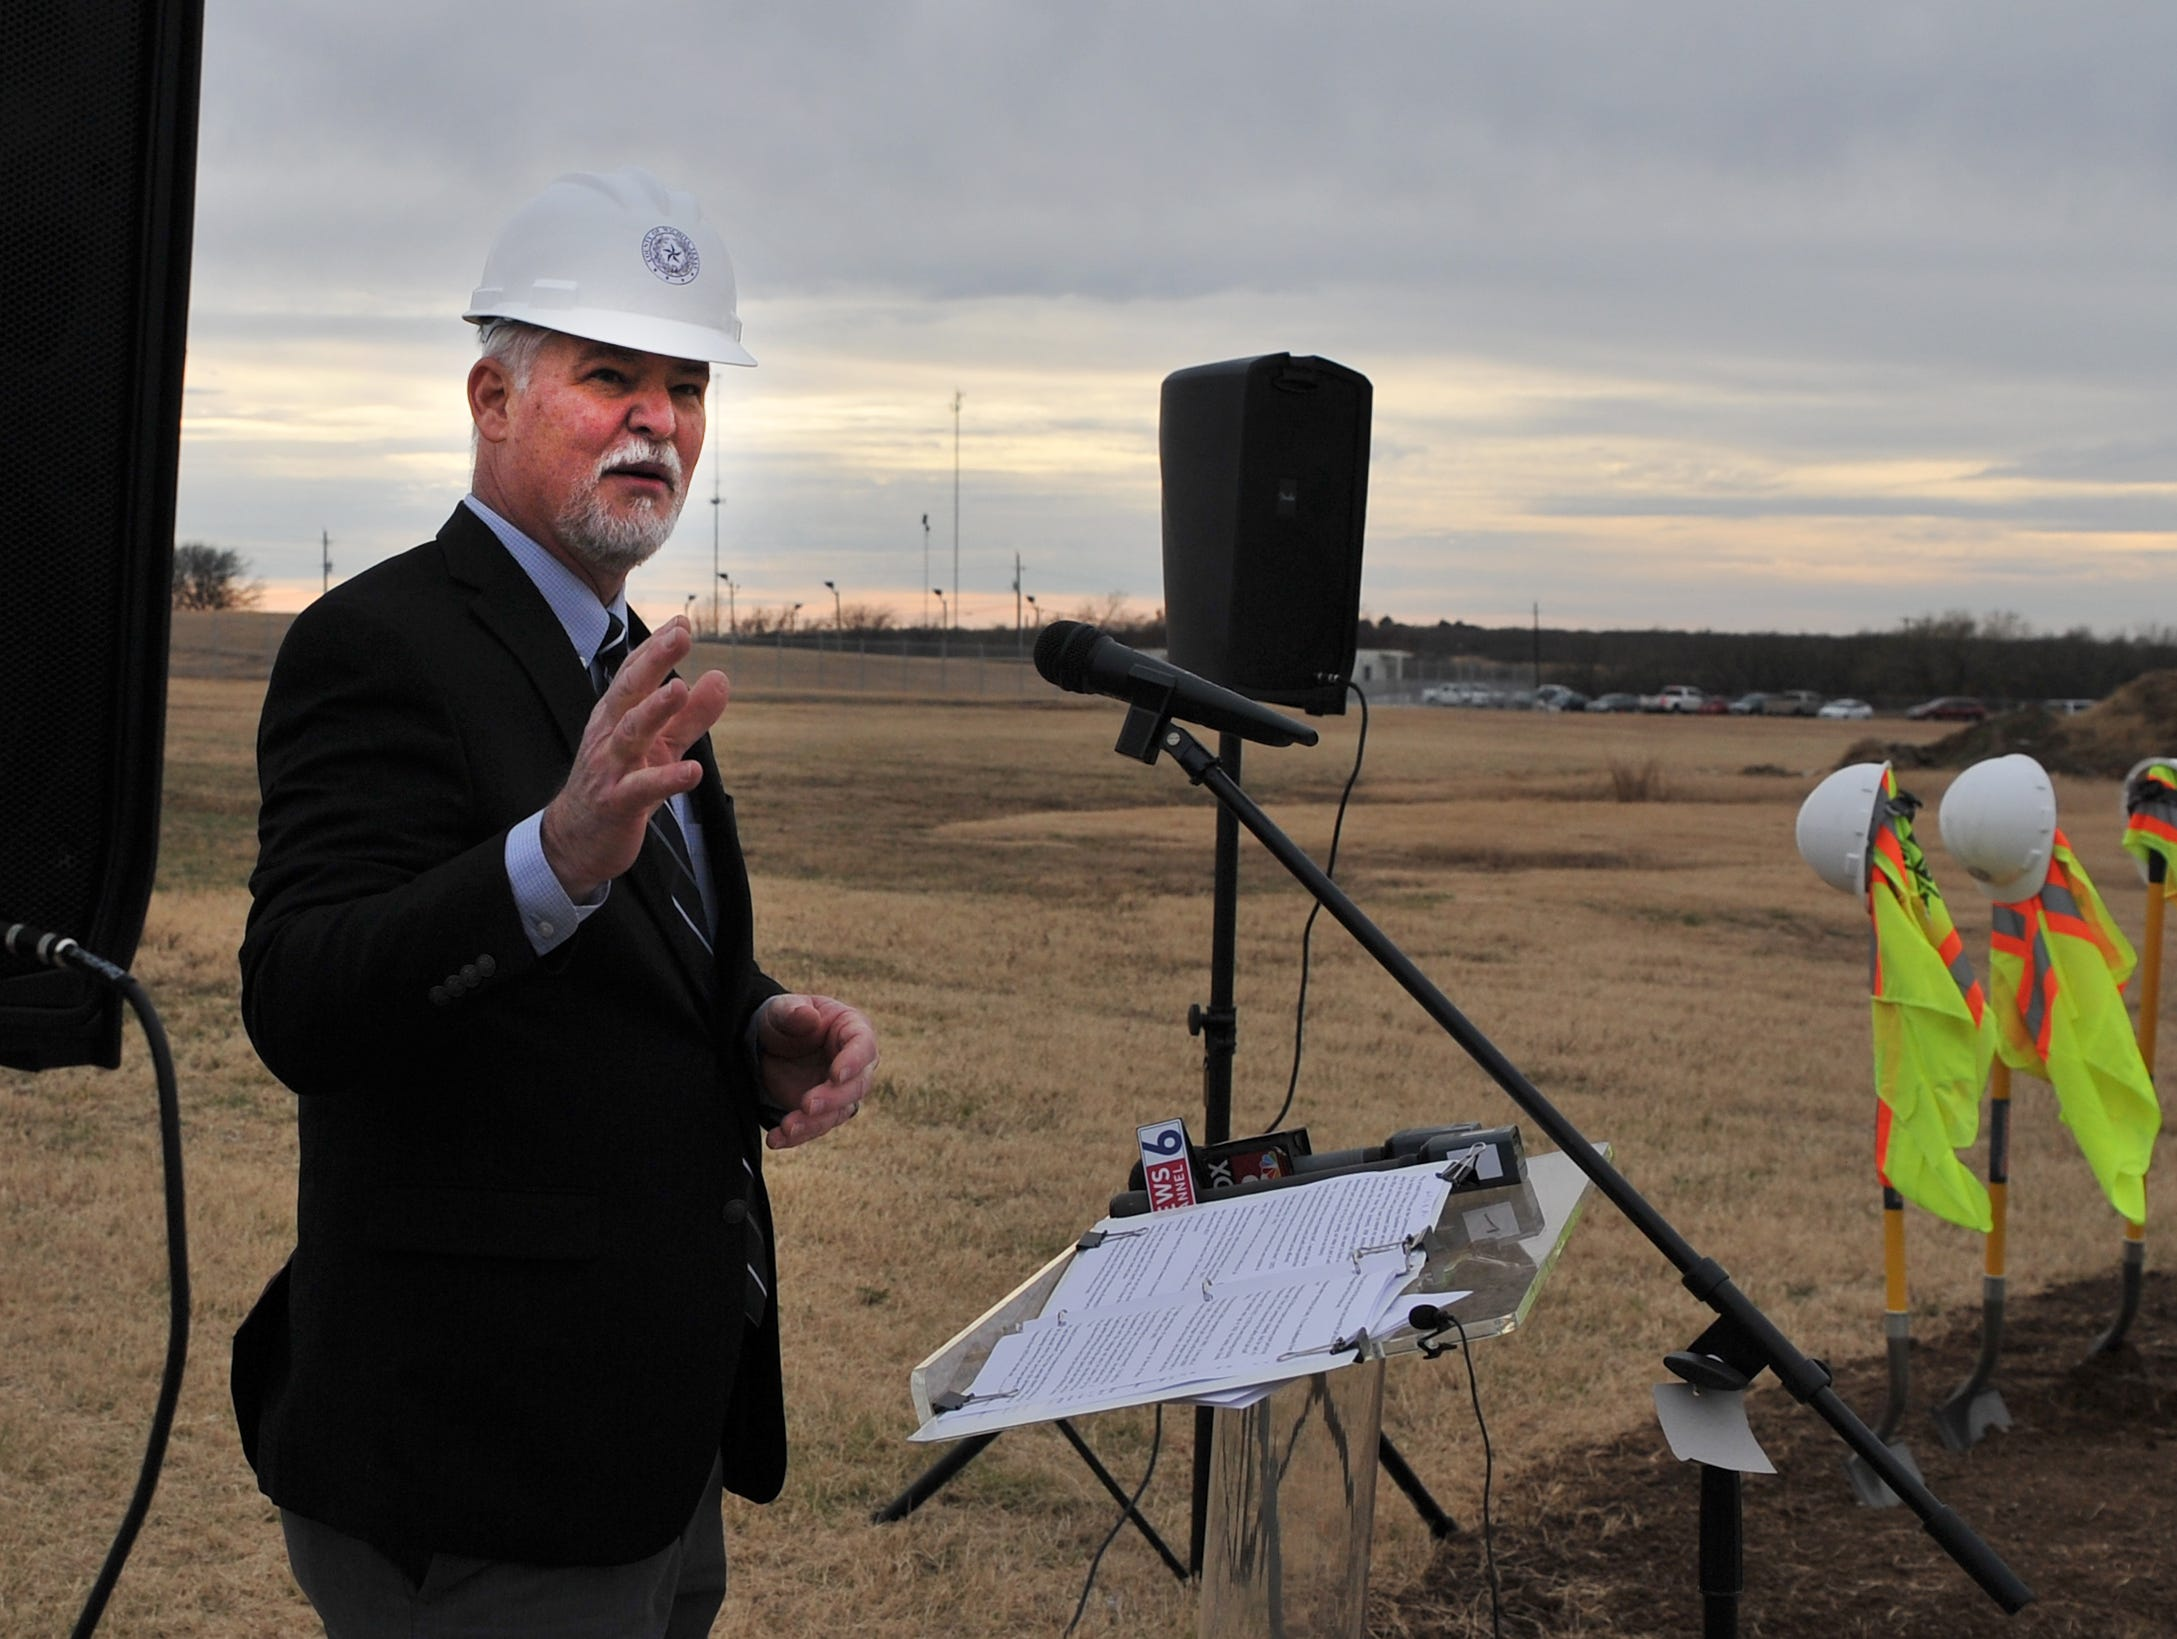 Wichita County Precinct 1 Commissioner, Mark Beachamp spoke during a groundbreaking ceremony for the law enforcement Tuesday afternoon.